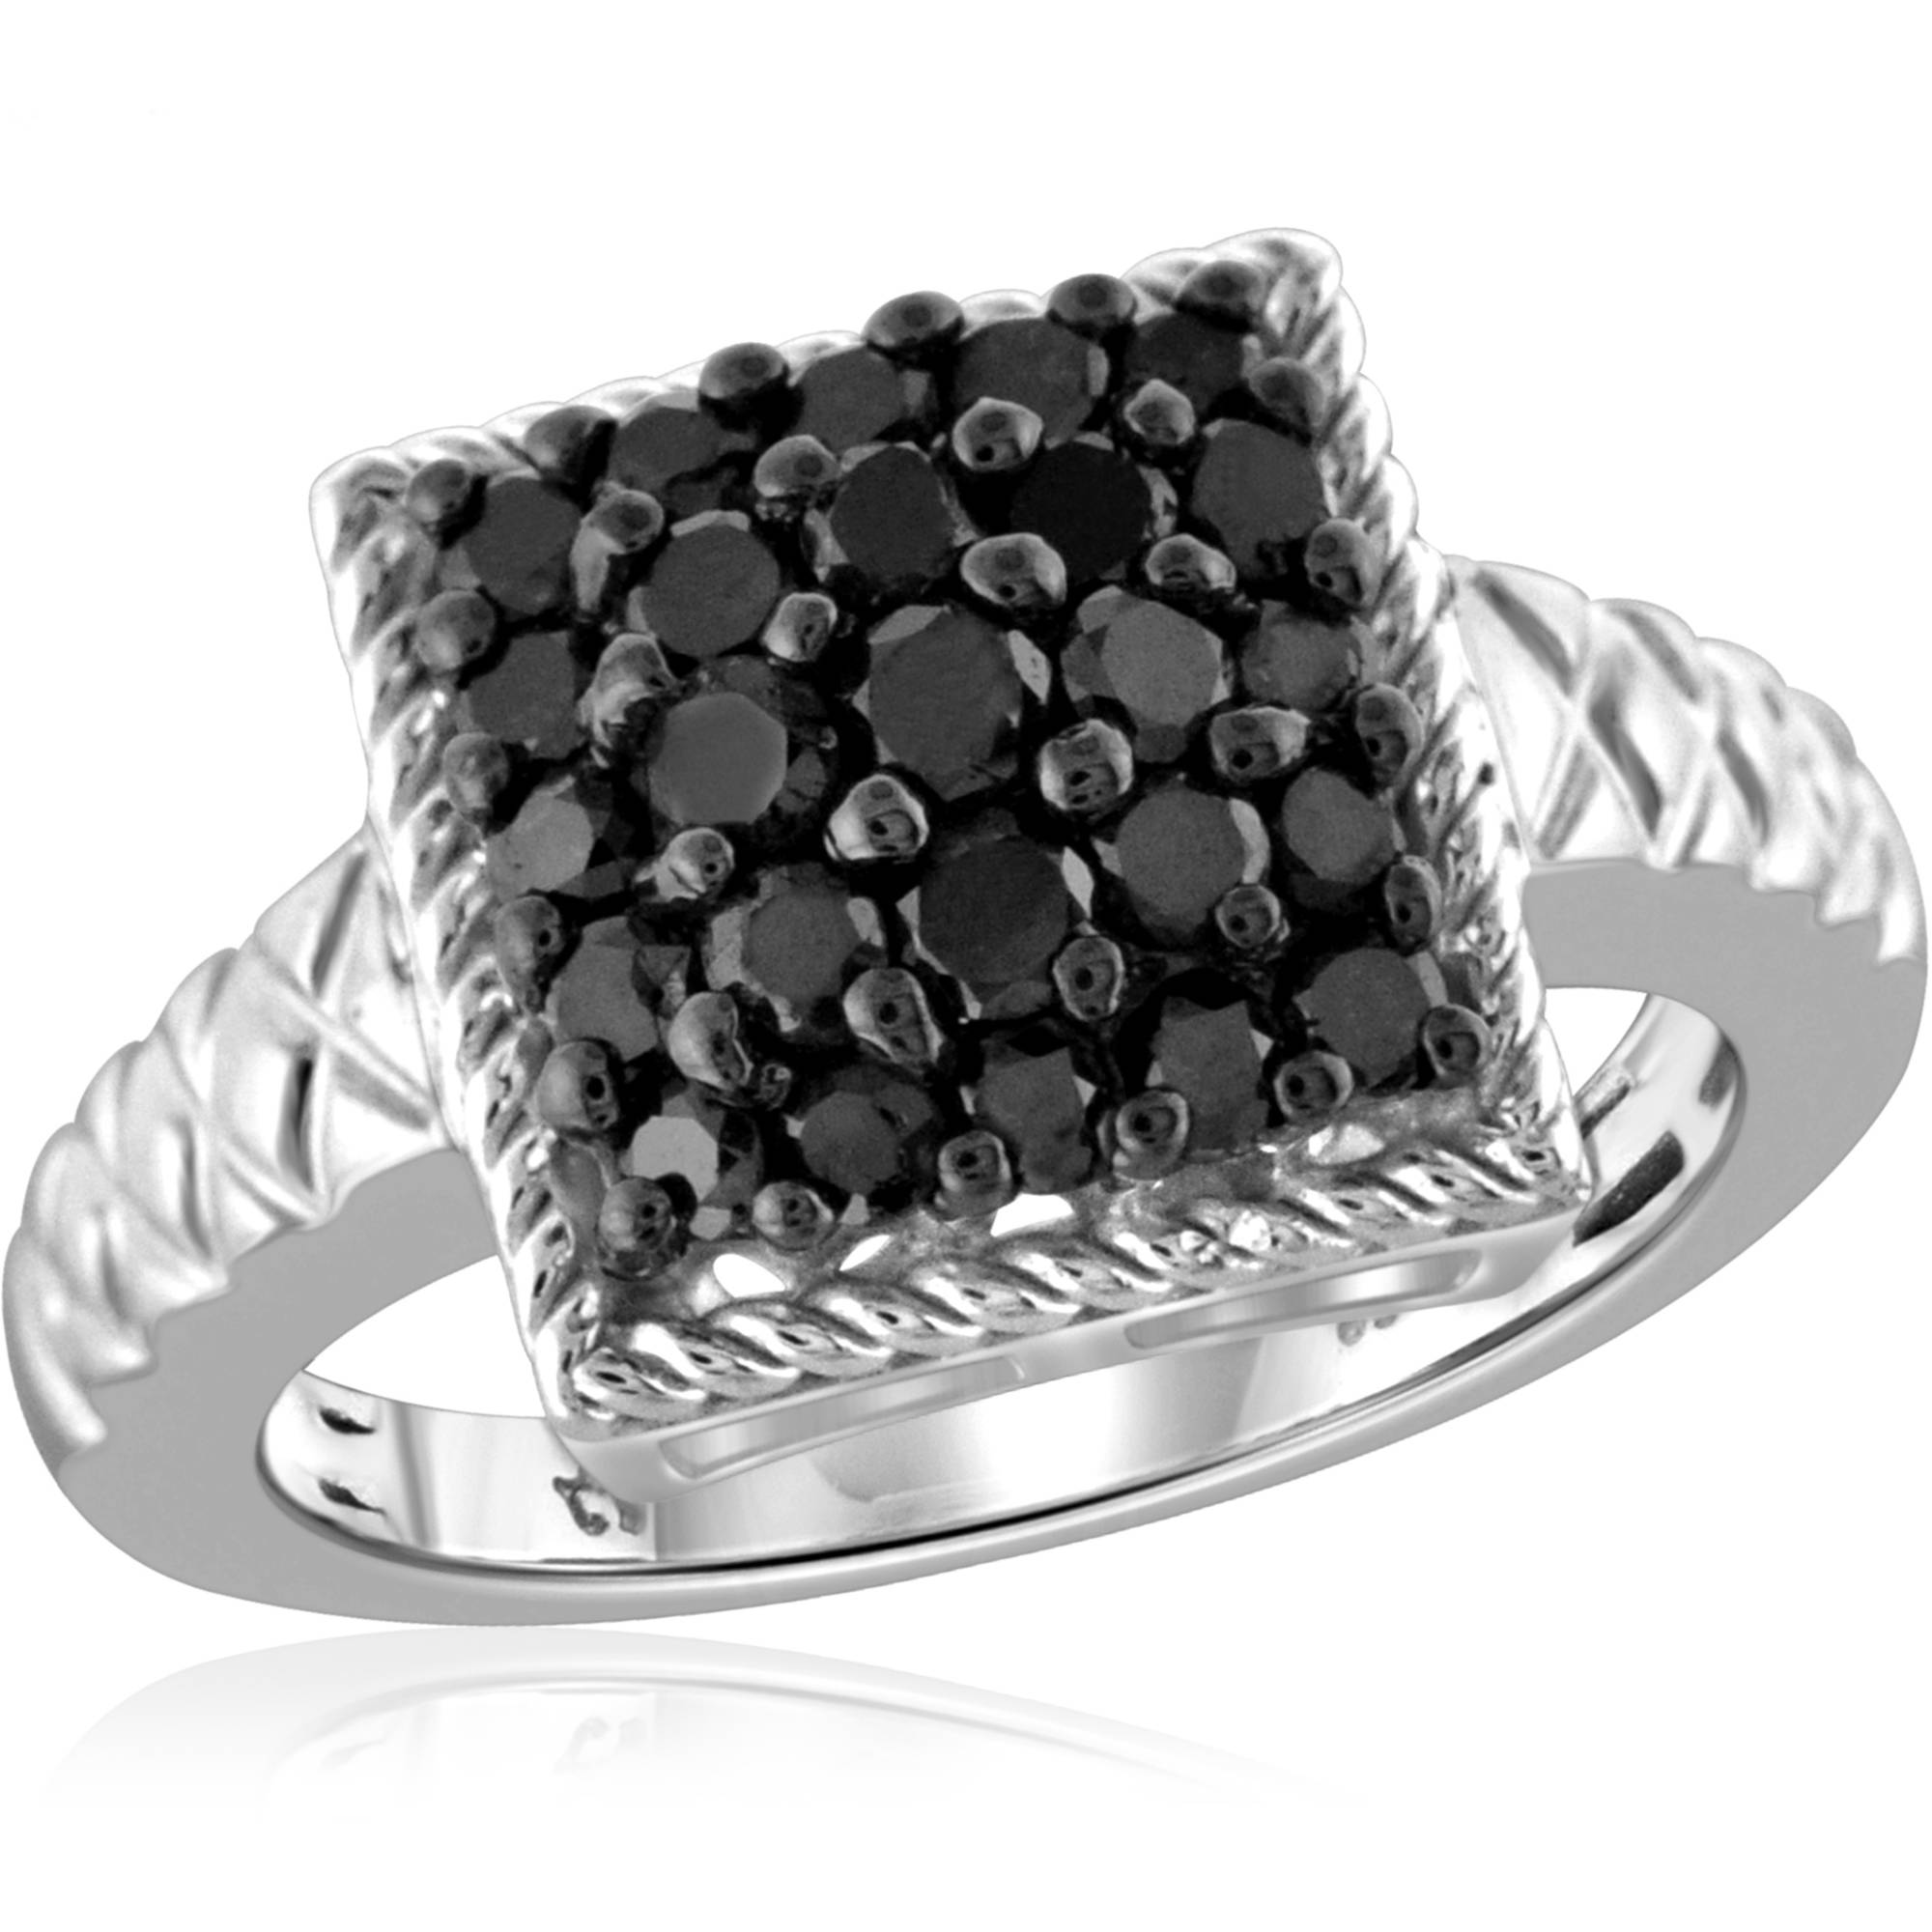 JewelersClub 1 Carat T.W. Black Diamond Ring in Sterling Silver